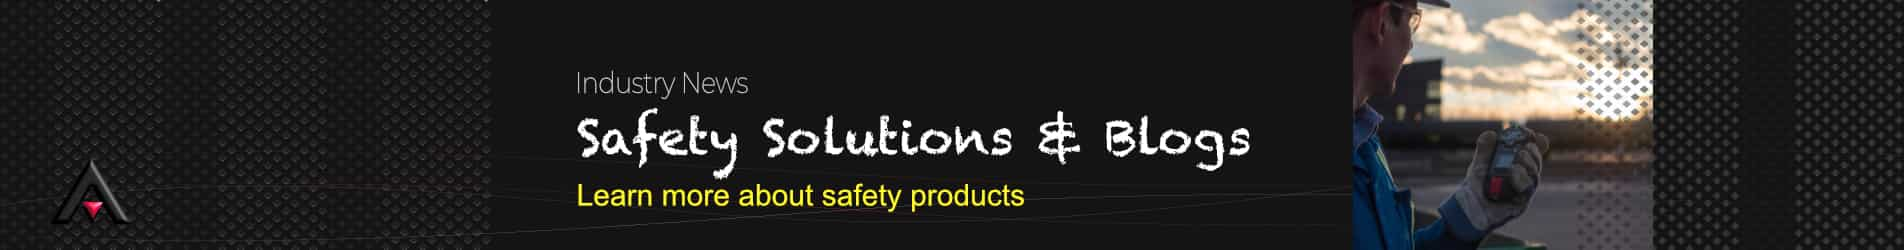 Safety Solutions & Blogs